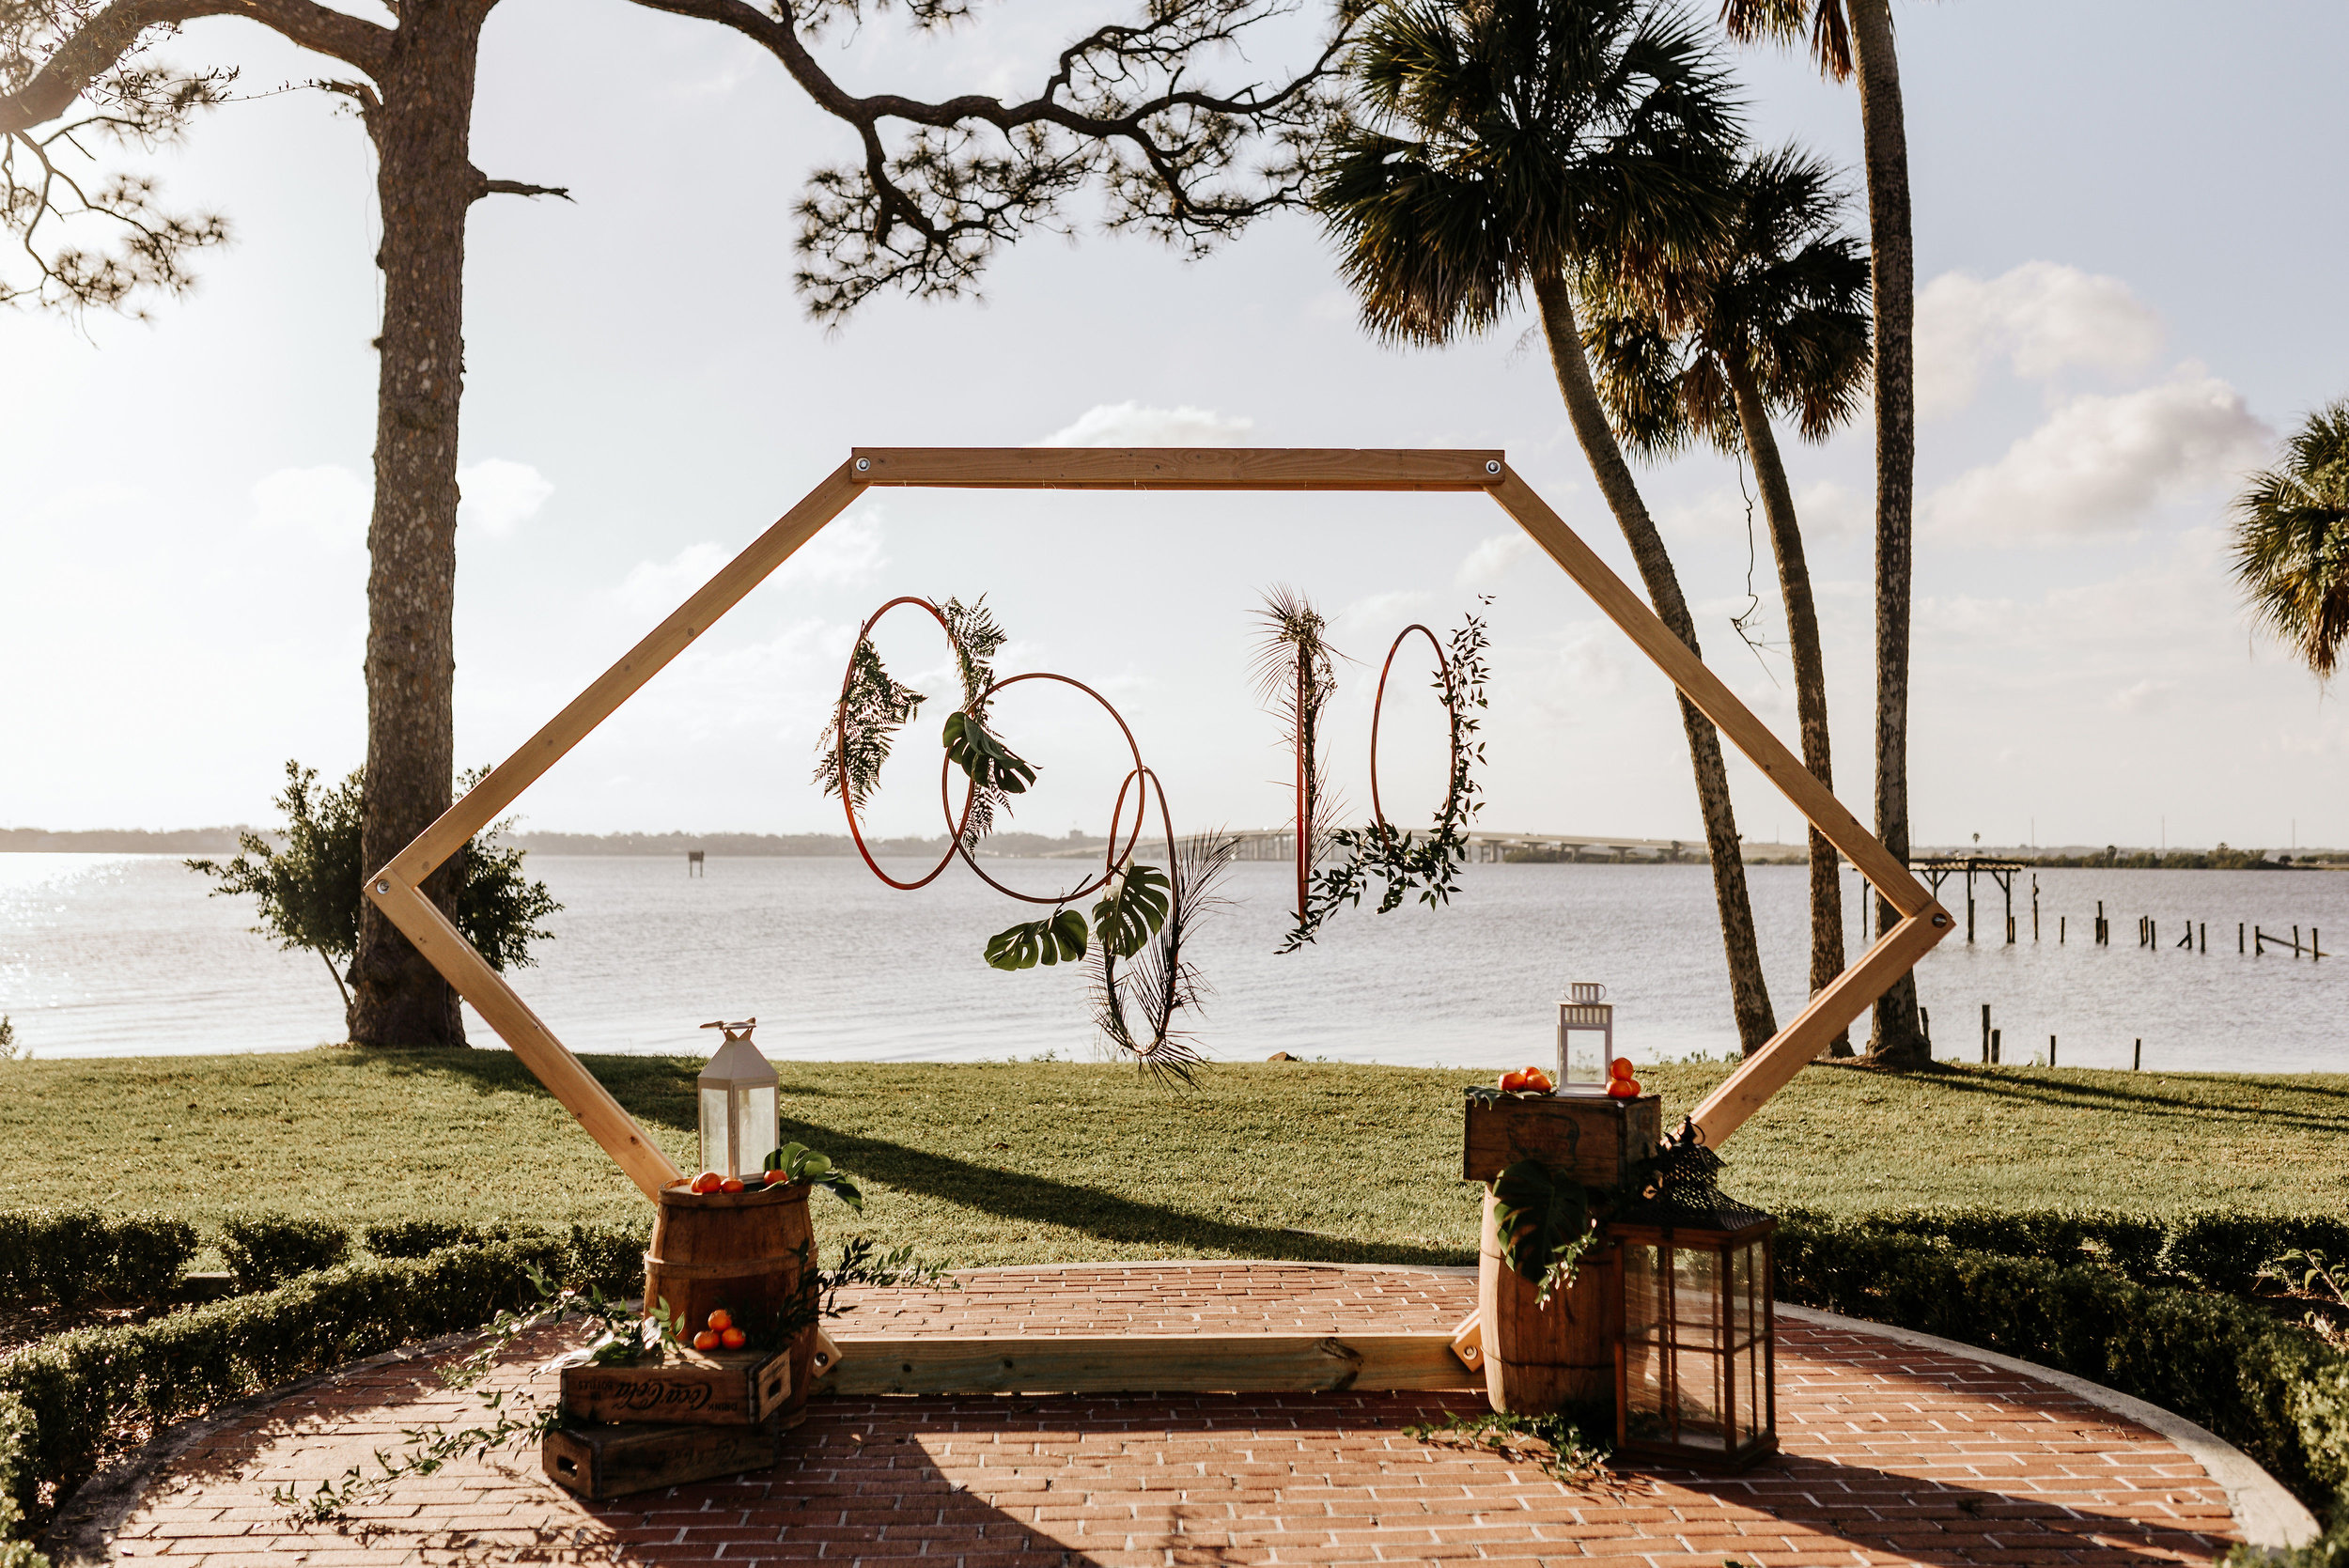 Field_Manor_Wedding_Styled_Shoot_Merritt_Island_Florida_Photography_by_V_1569.jpg